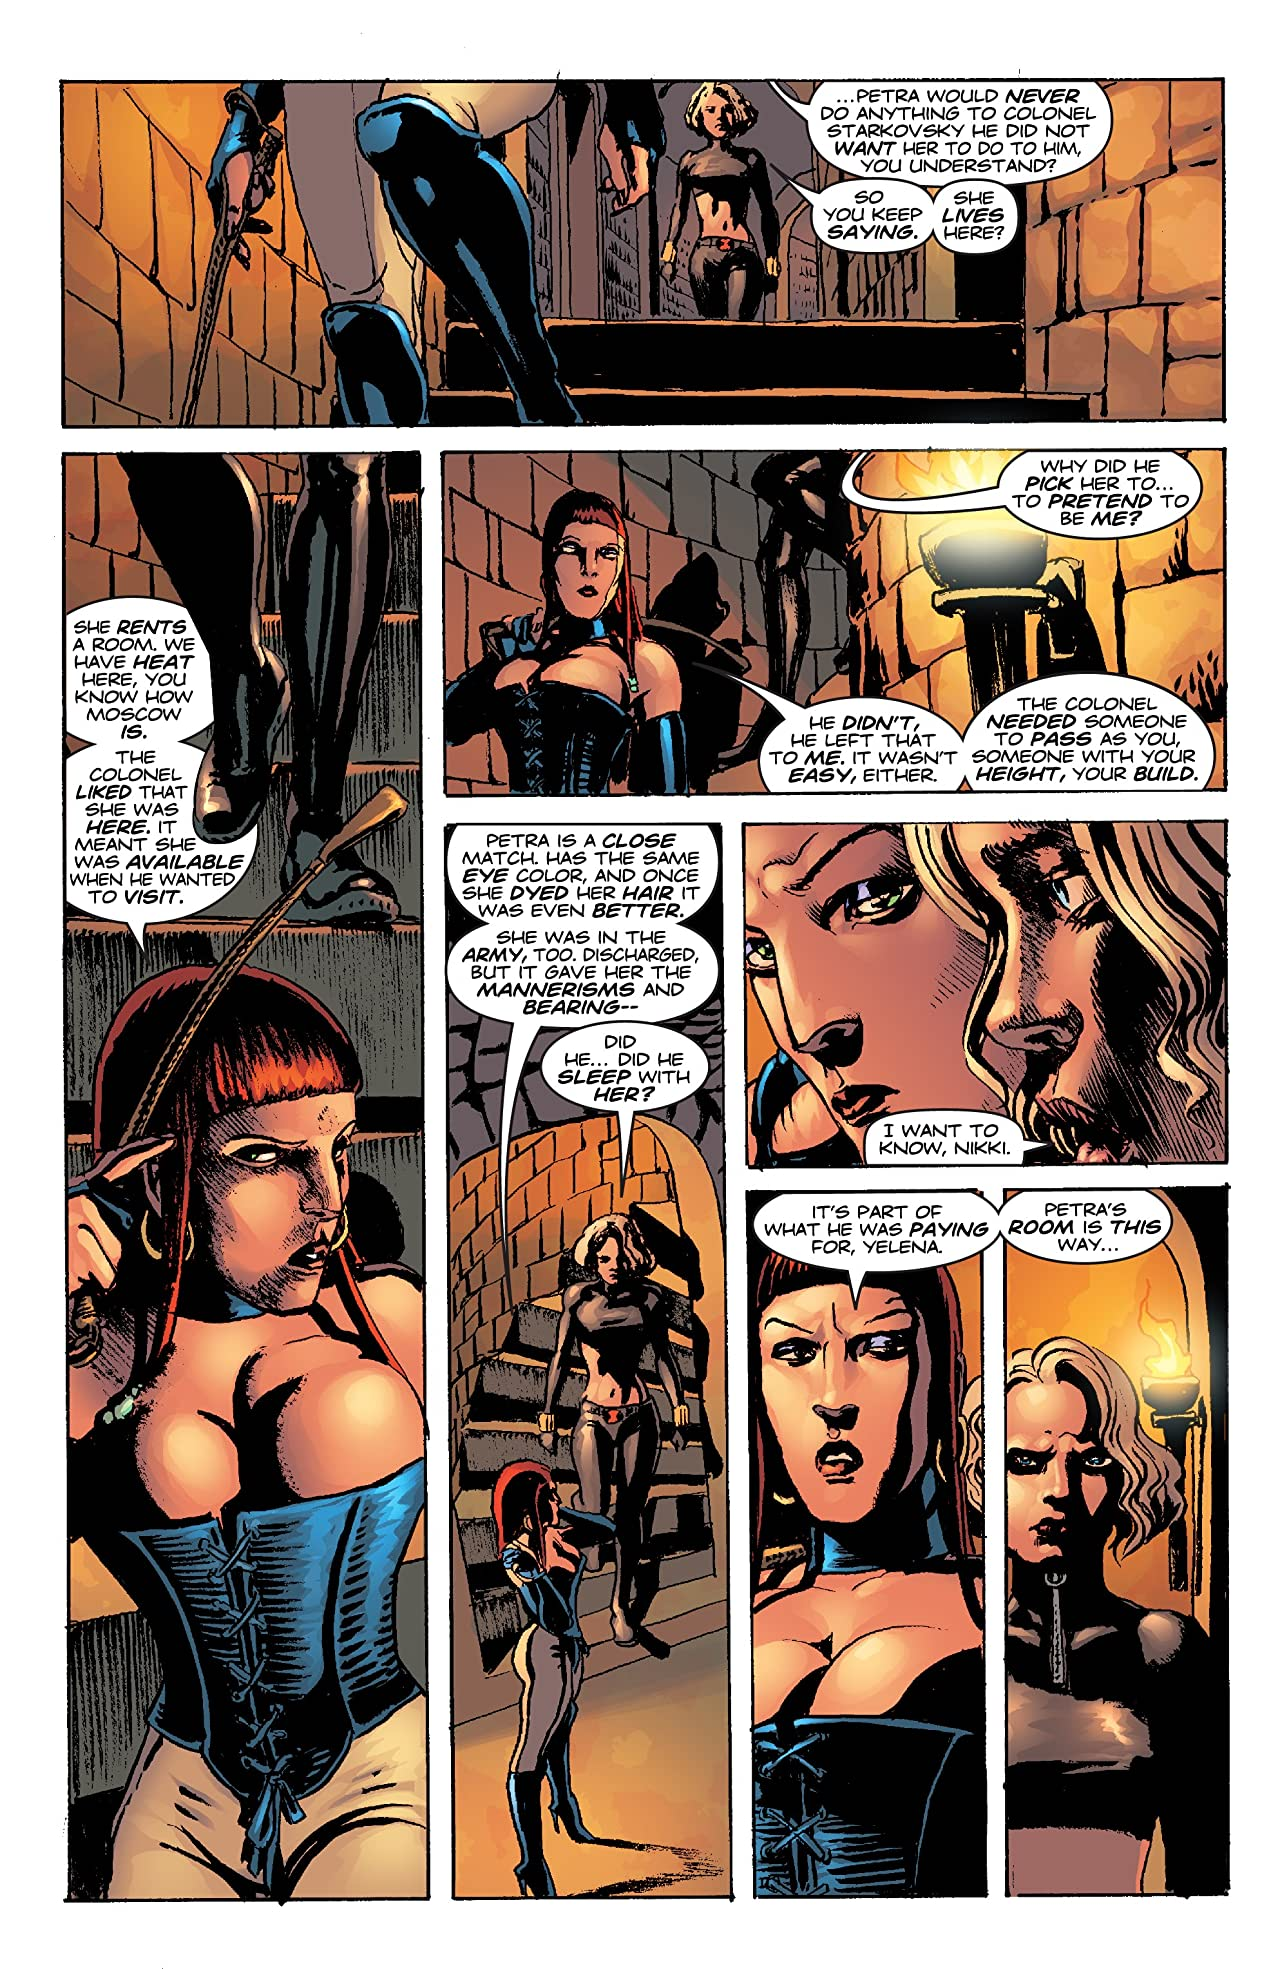 Black Widow: Pale Little Spider (2002) #3 (of 3)